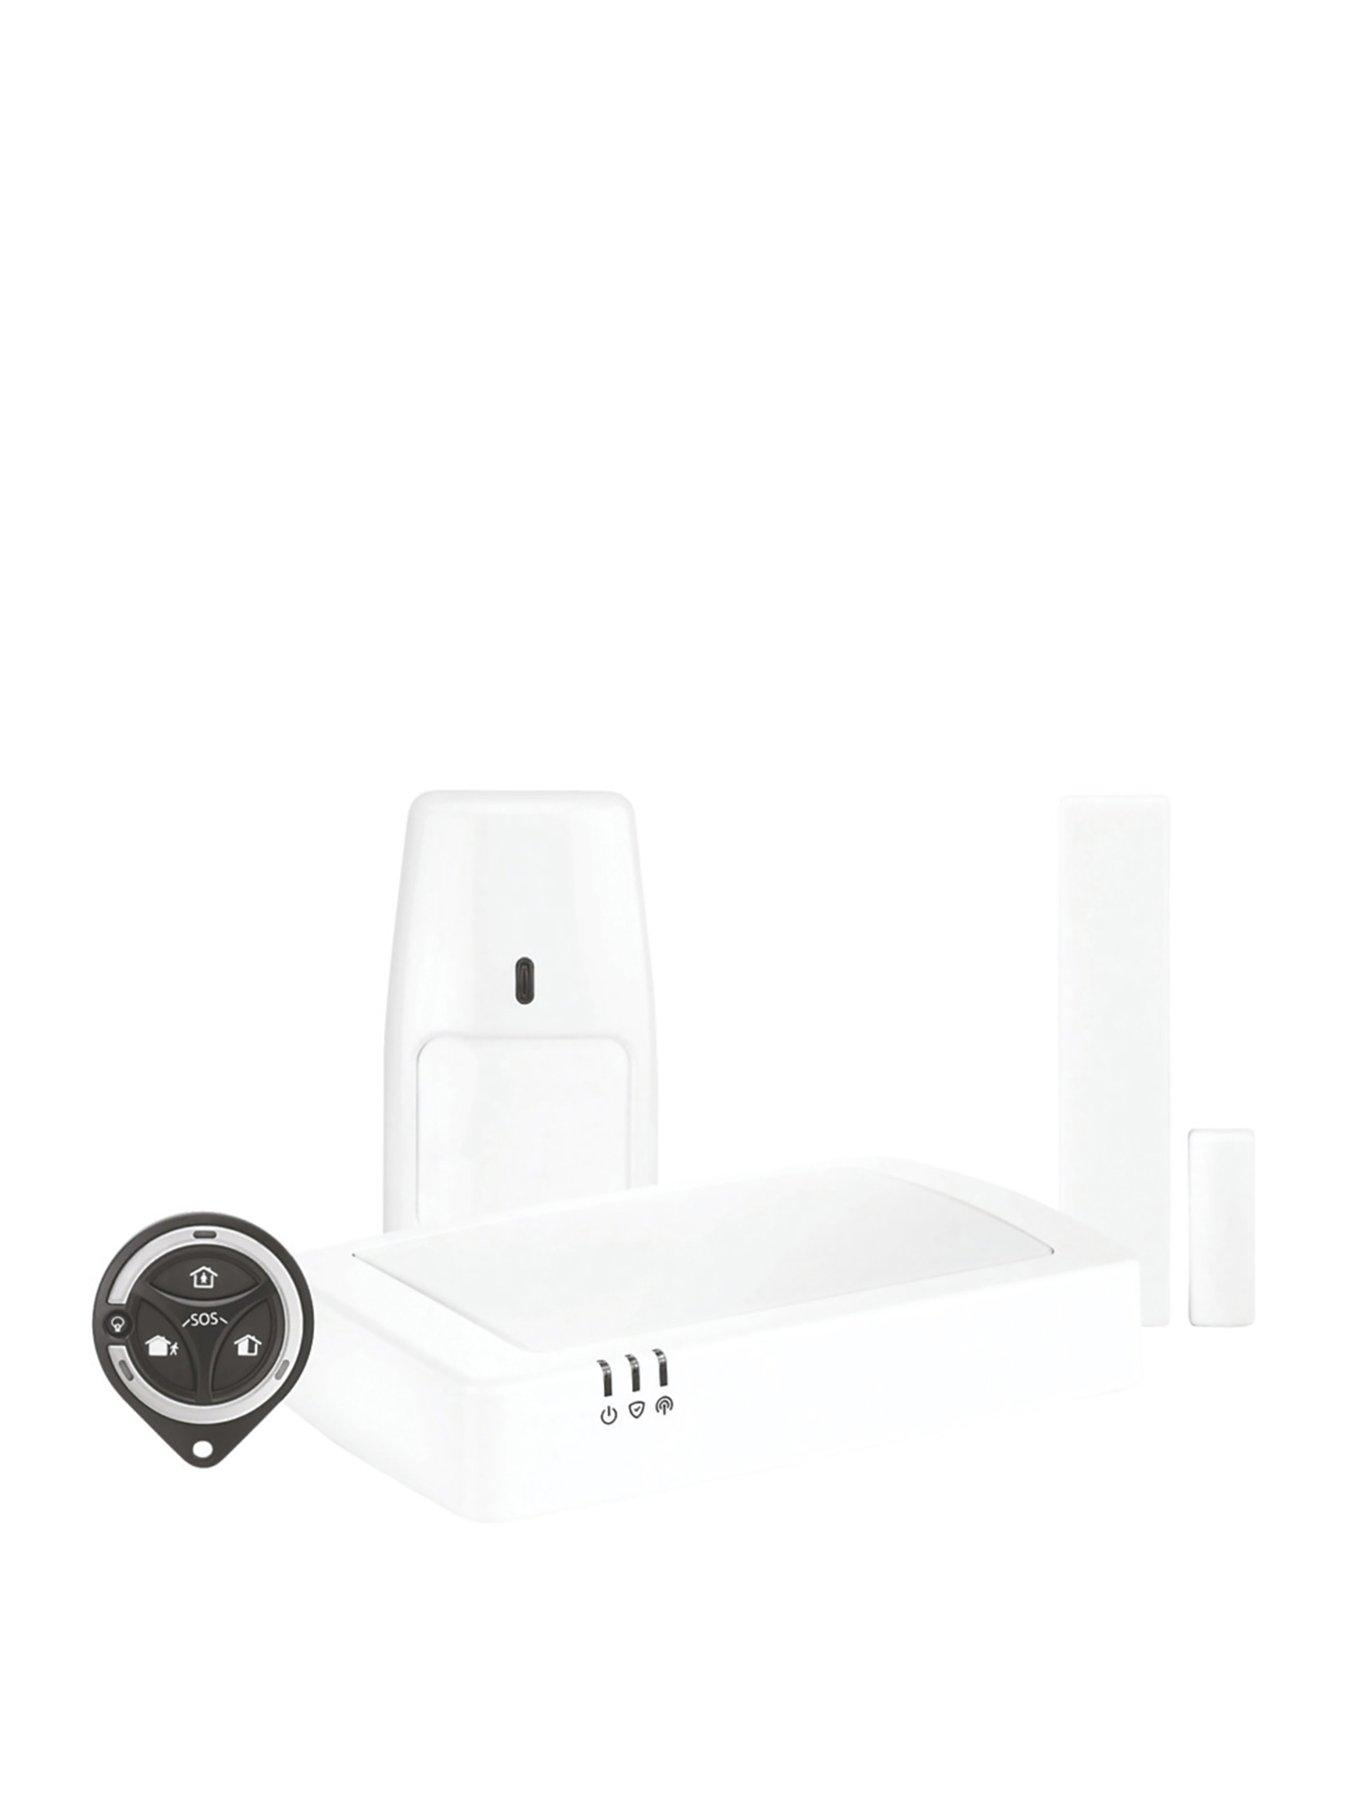 Compare prices for Honeywell Evo Wireless Home Alarm Kit